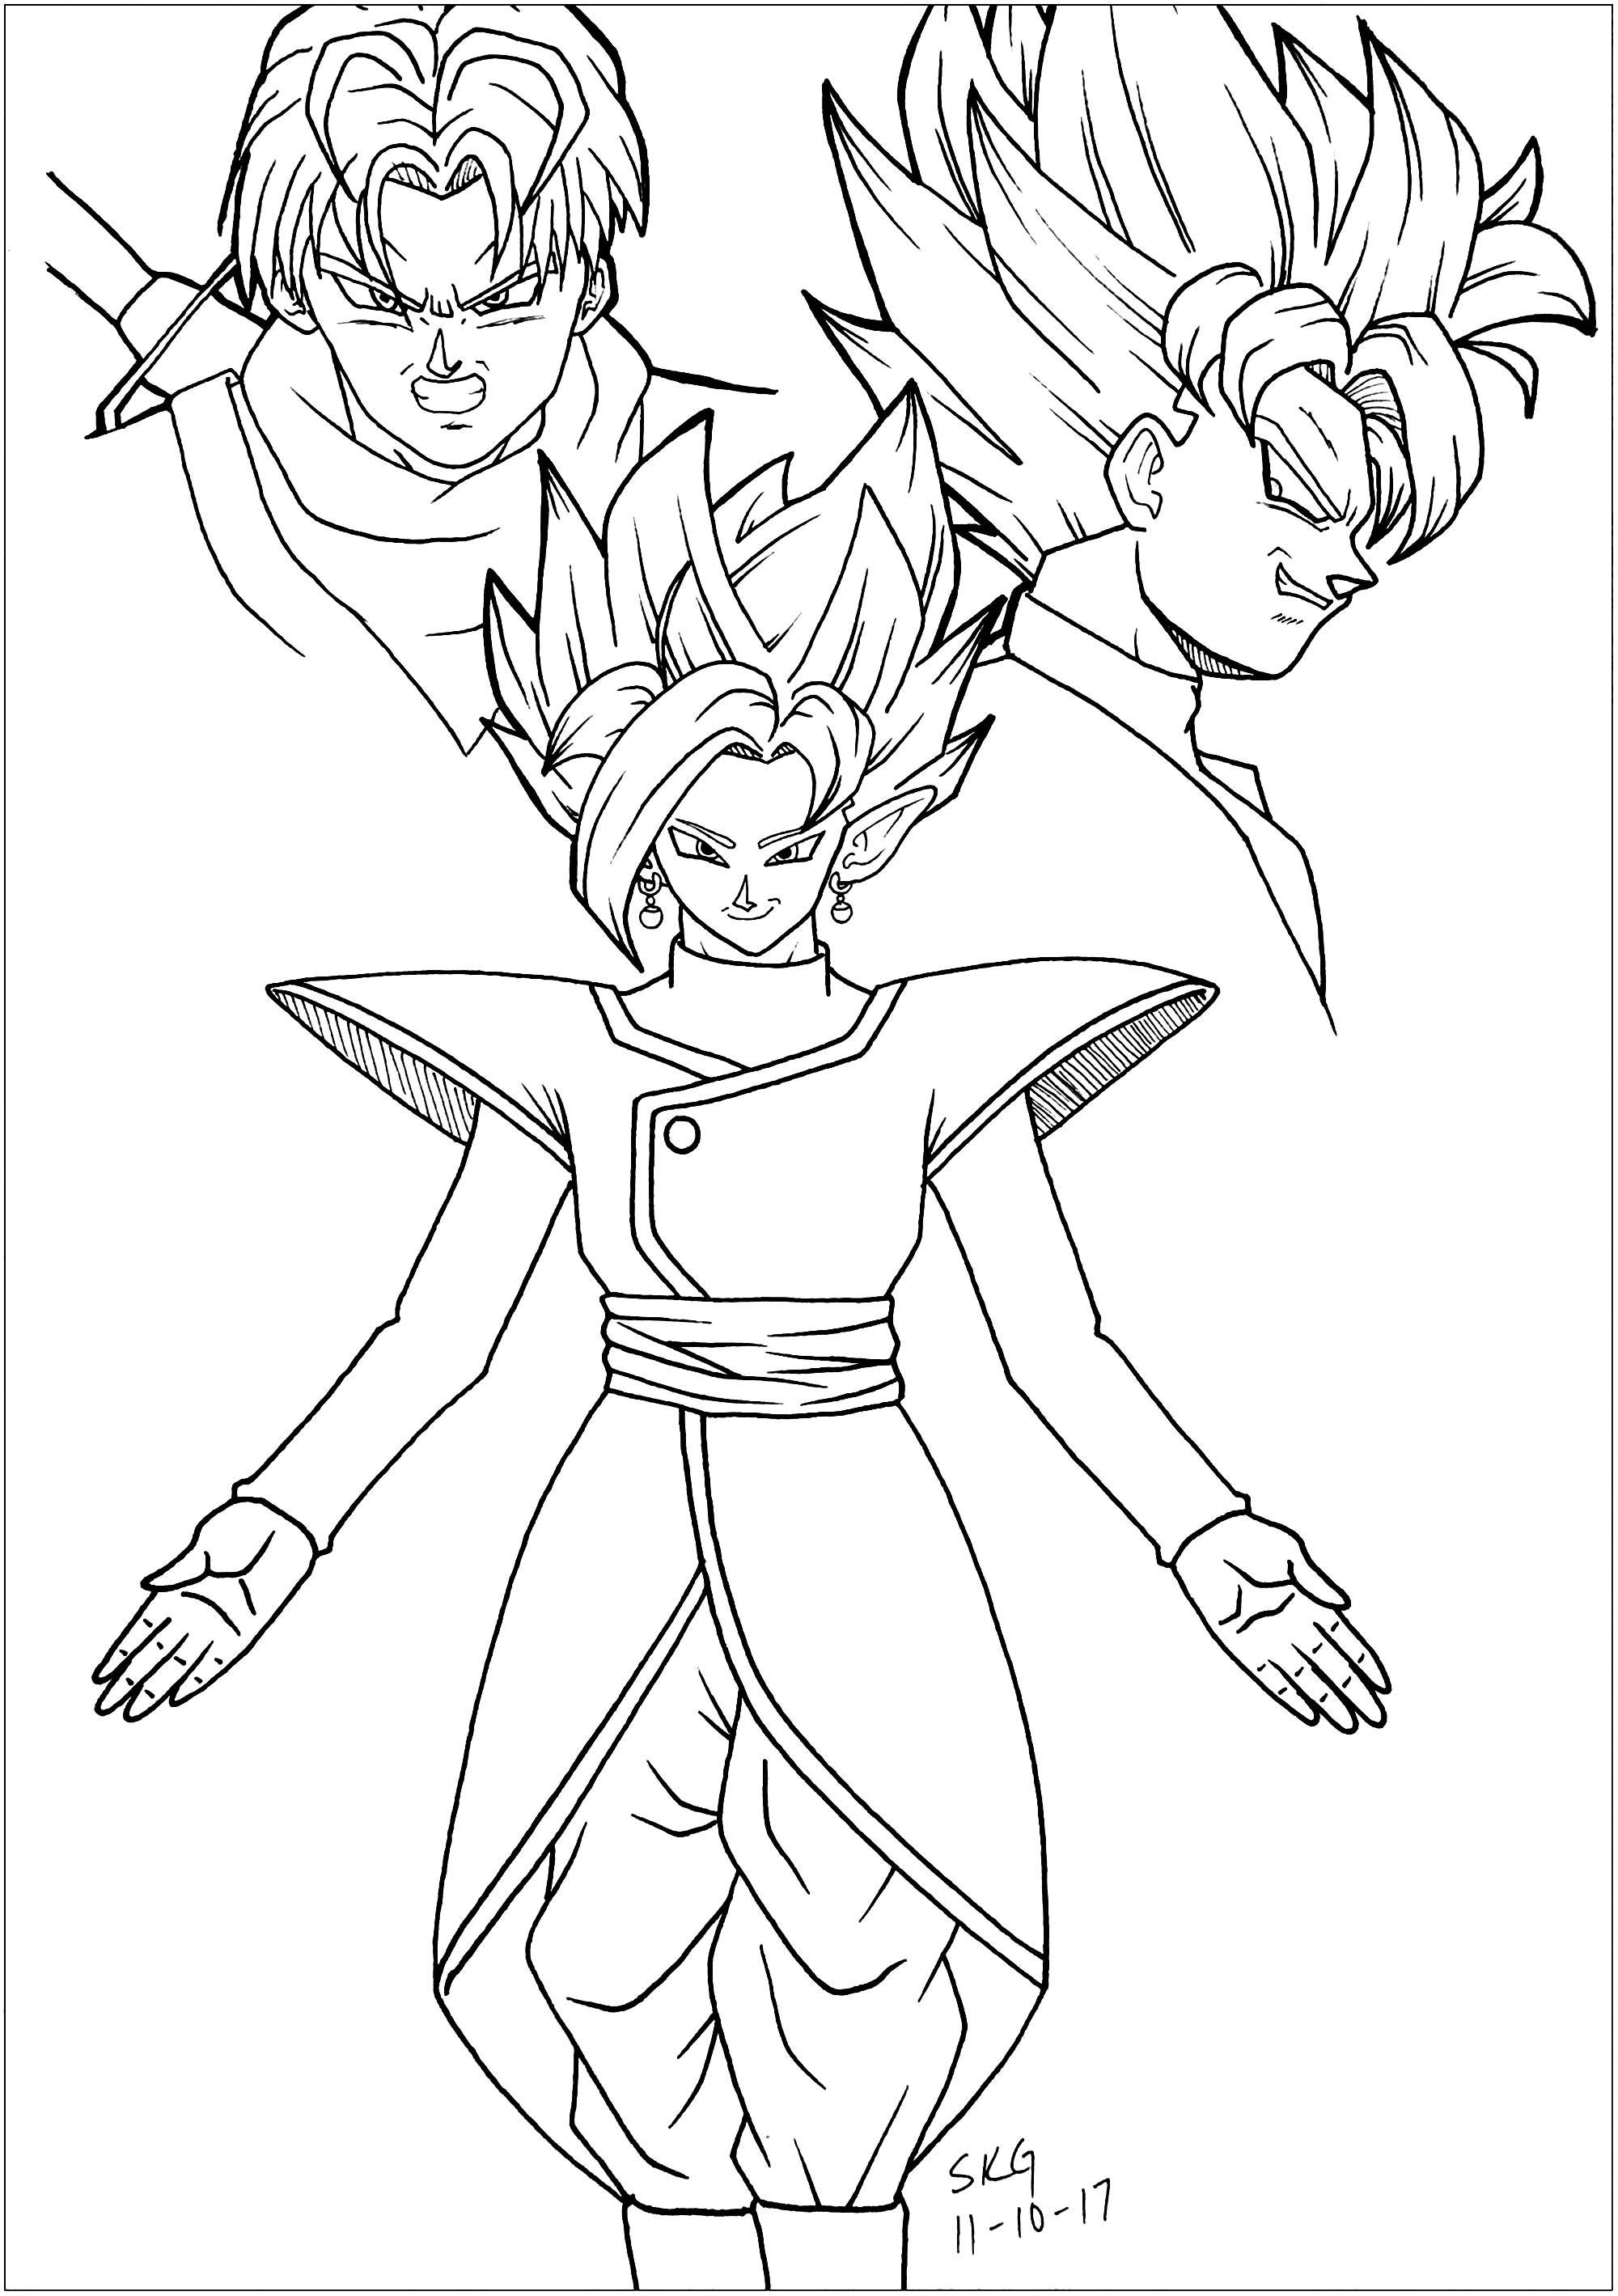 Black Goku Trunks And Zamasu Dragon Ball Z Kids Coloring Pages